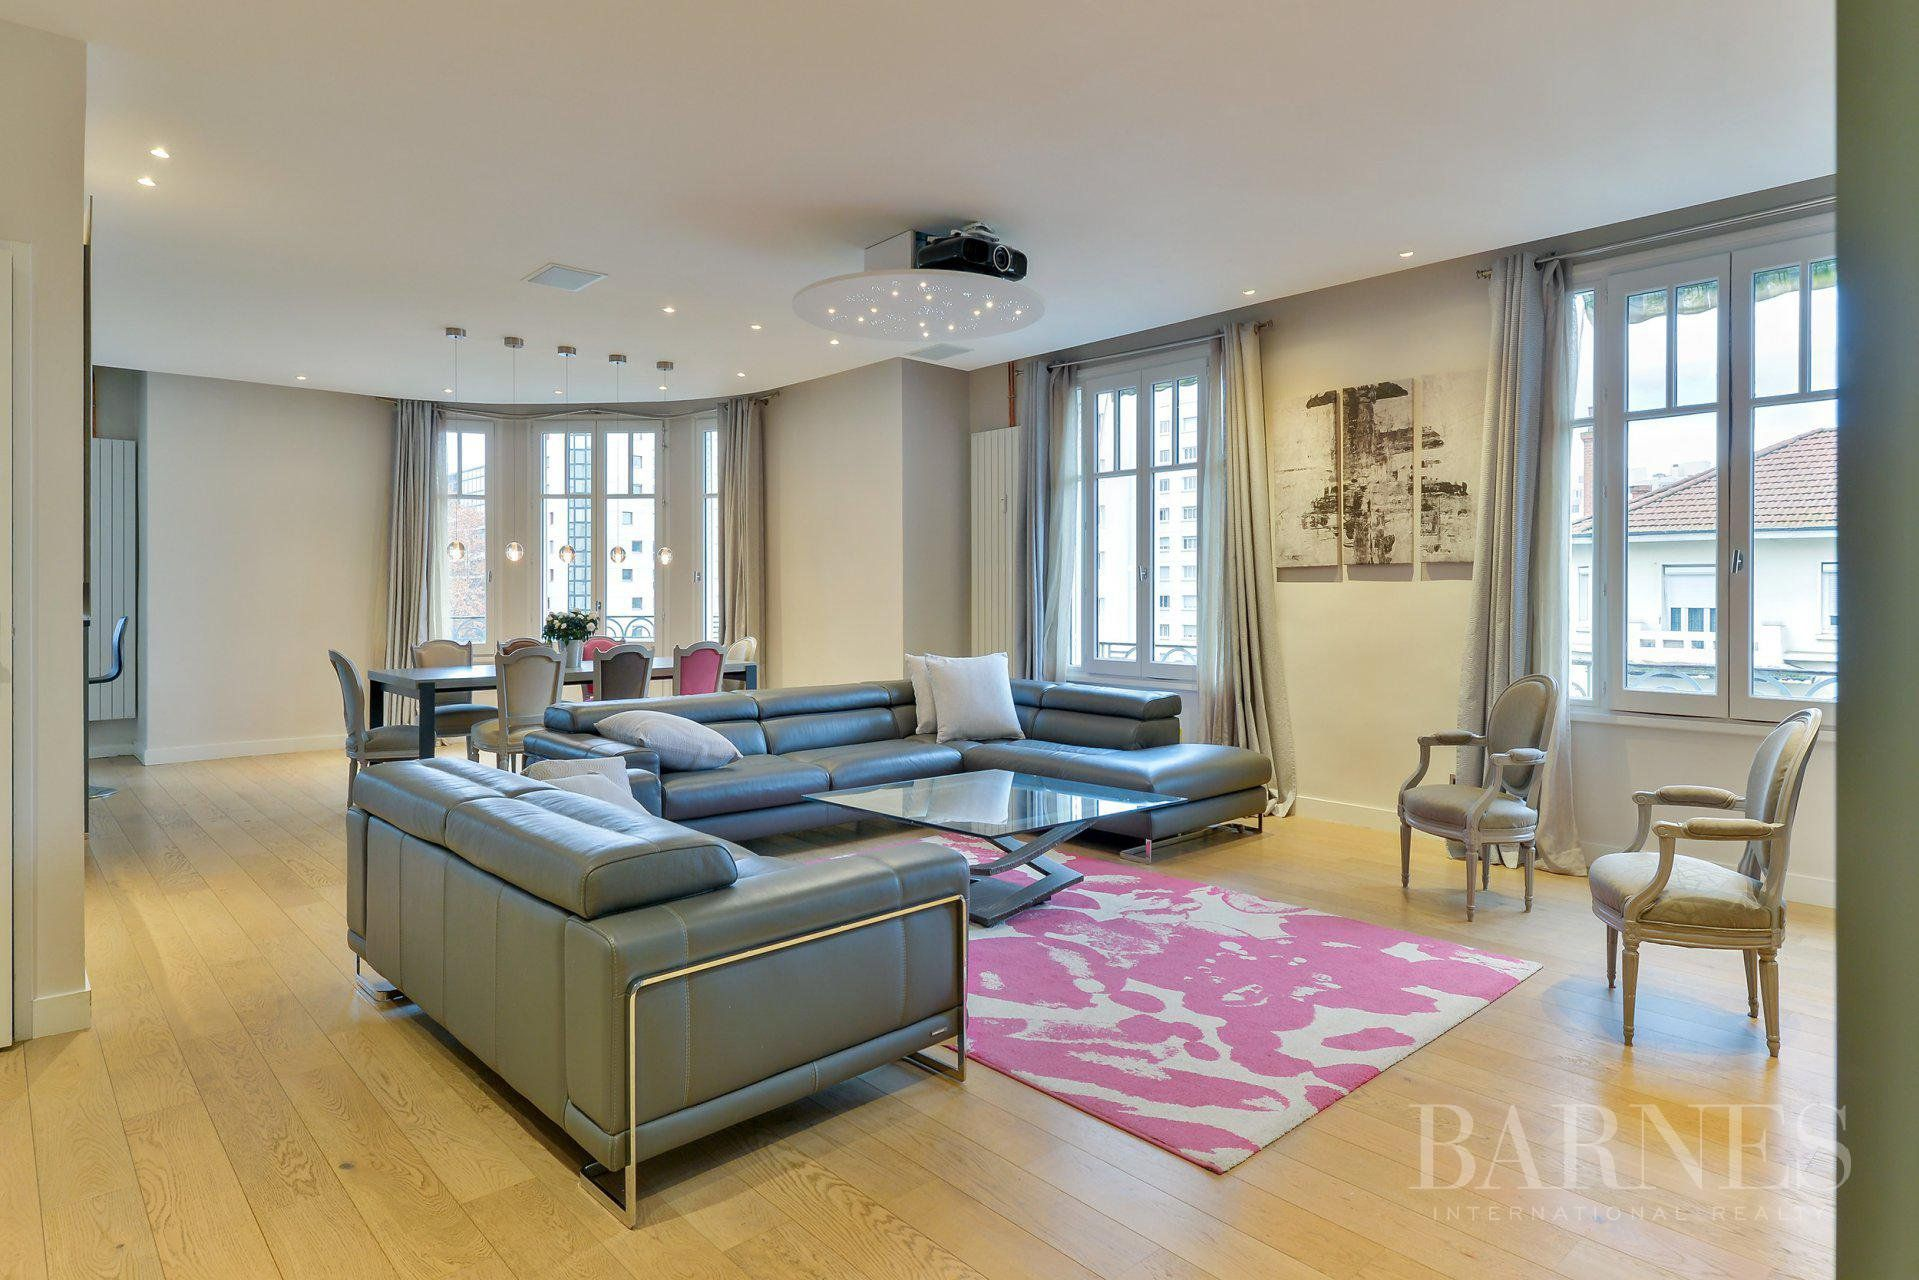 Lyon 6 - 163 sqm family apartment - 4 bedrooms